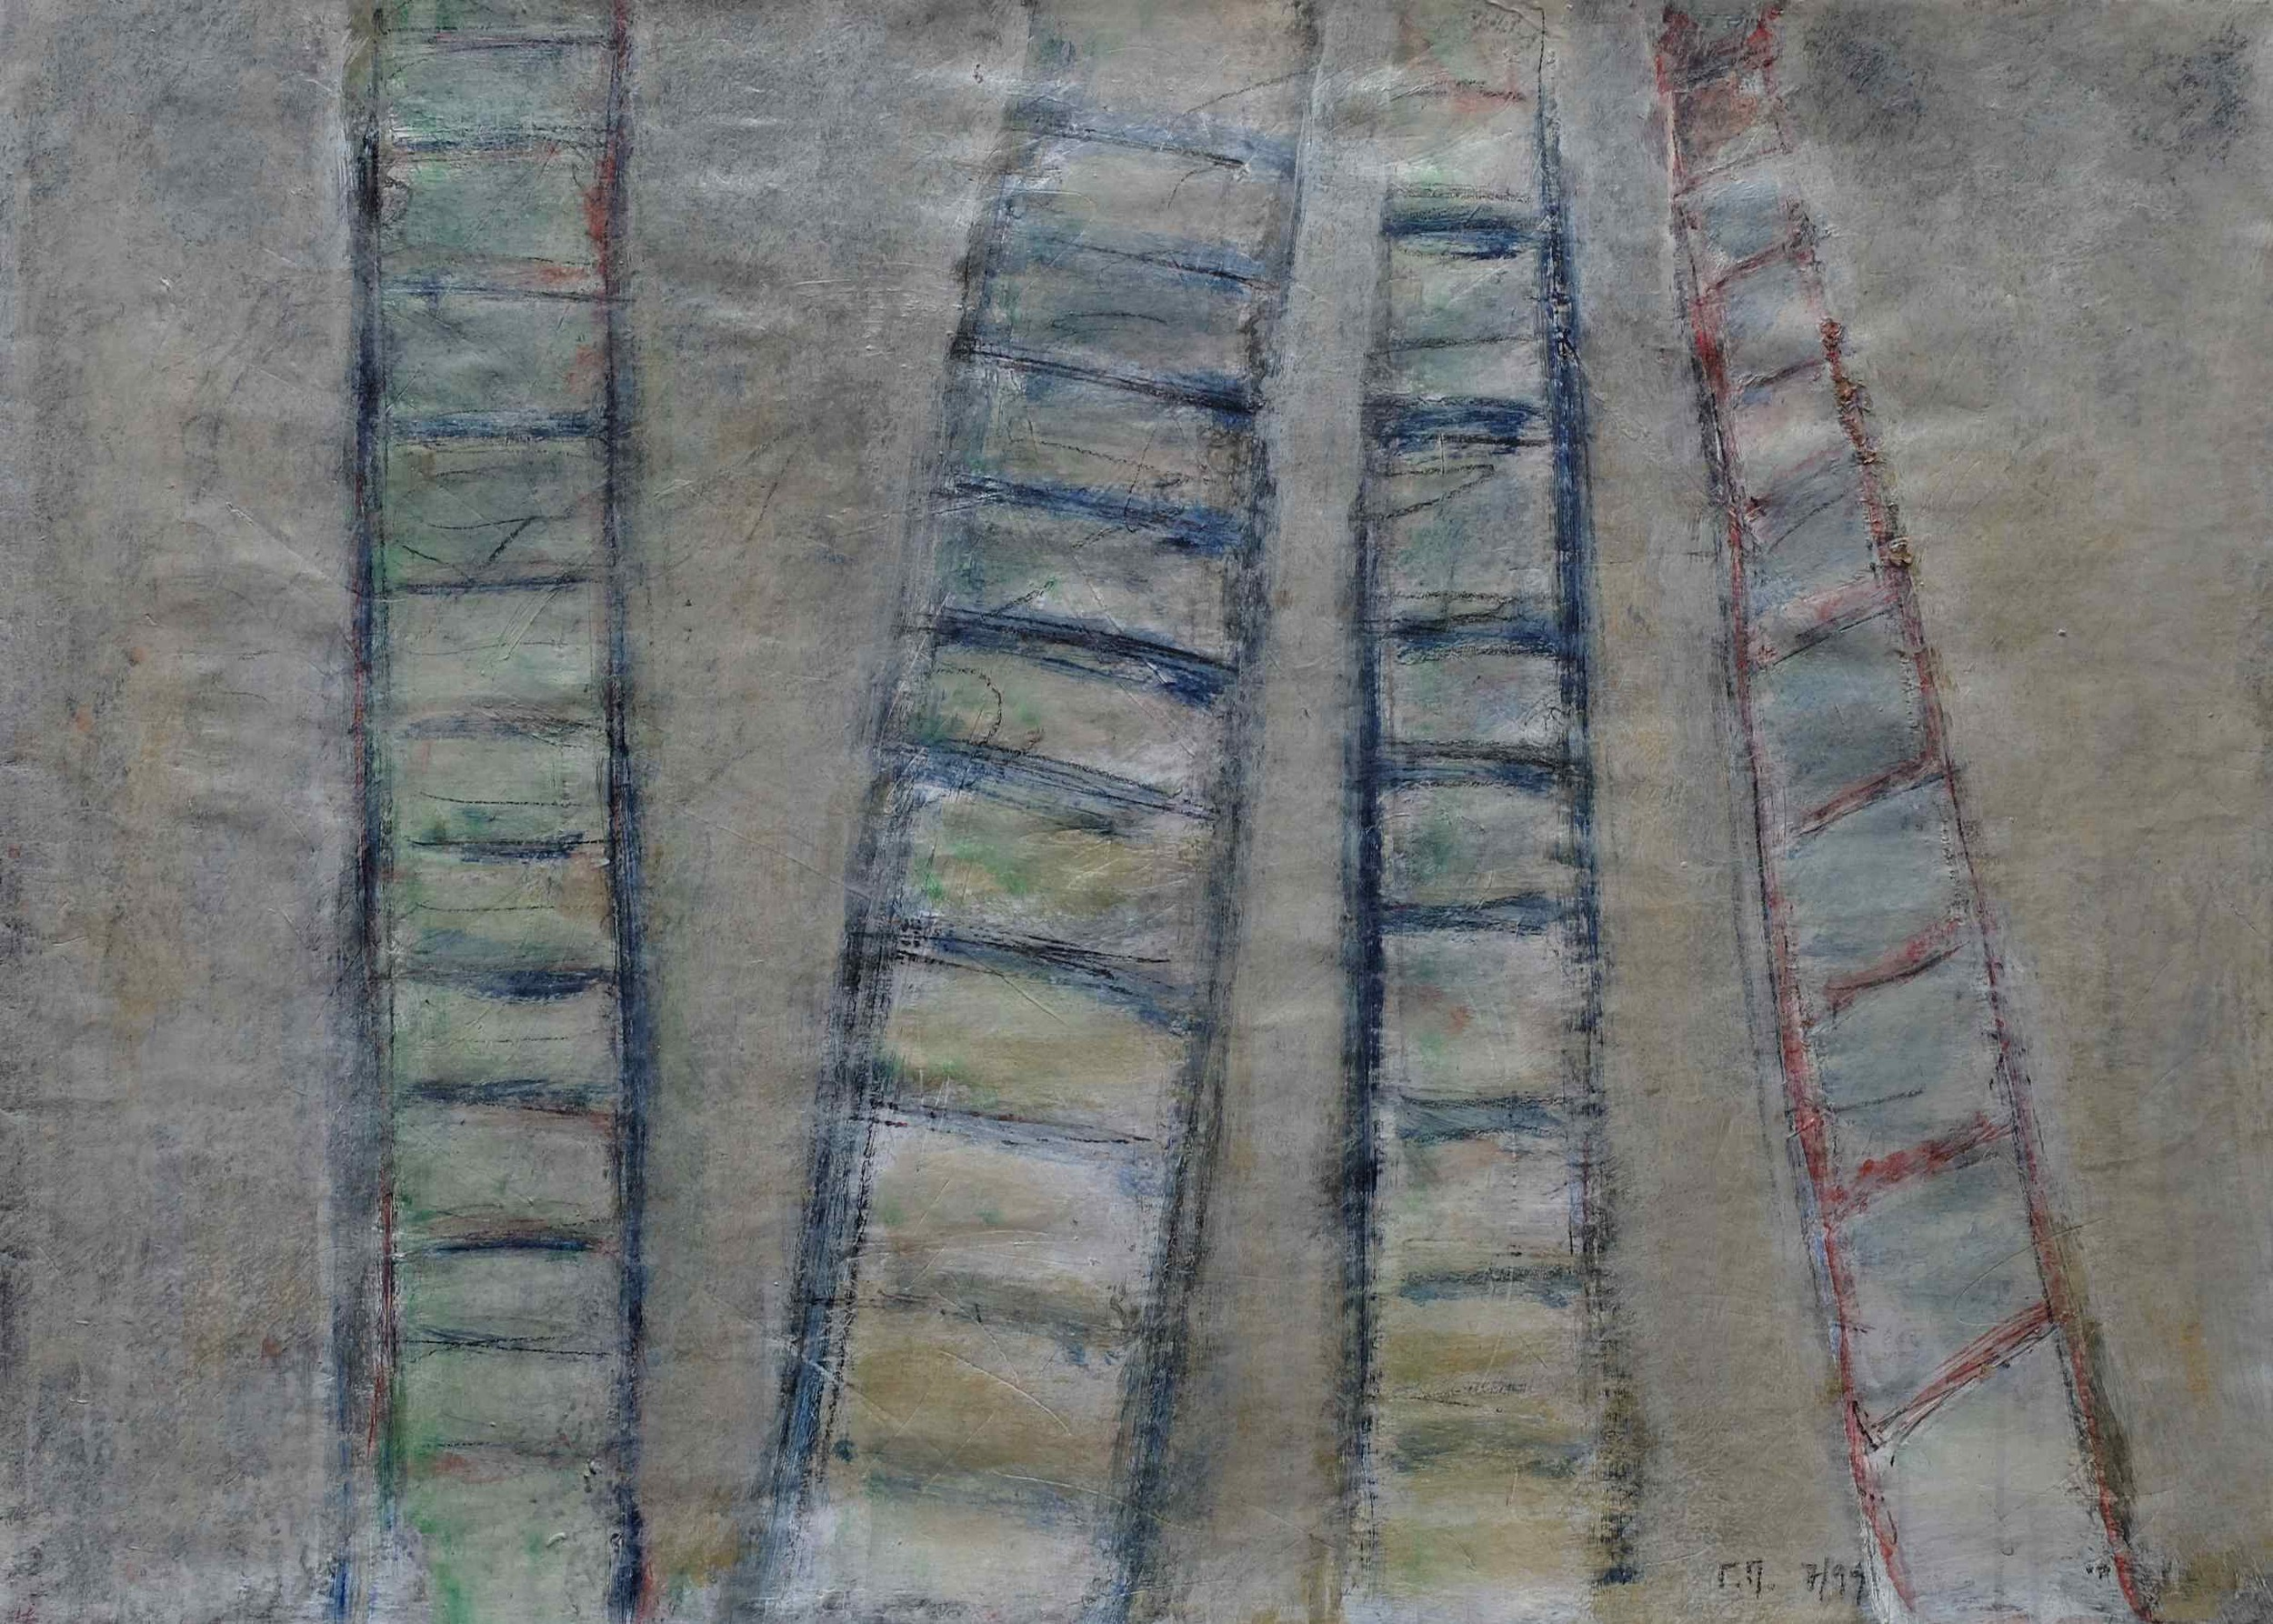 untitled; mixed media on paper; 50x70; 1999